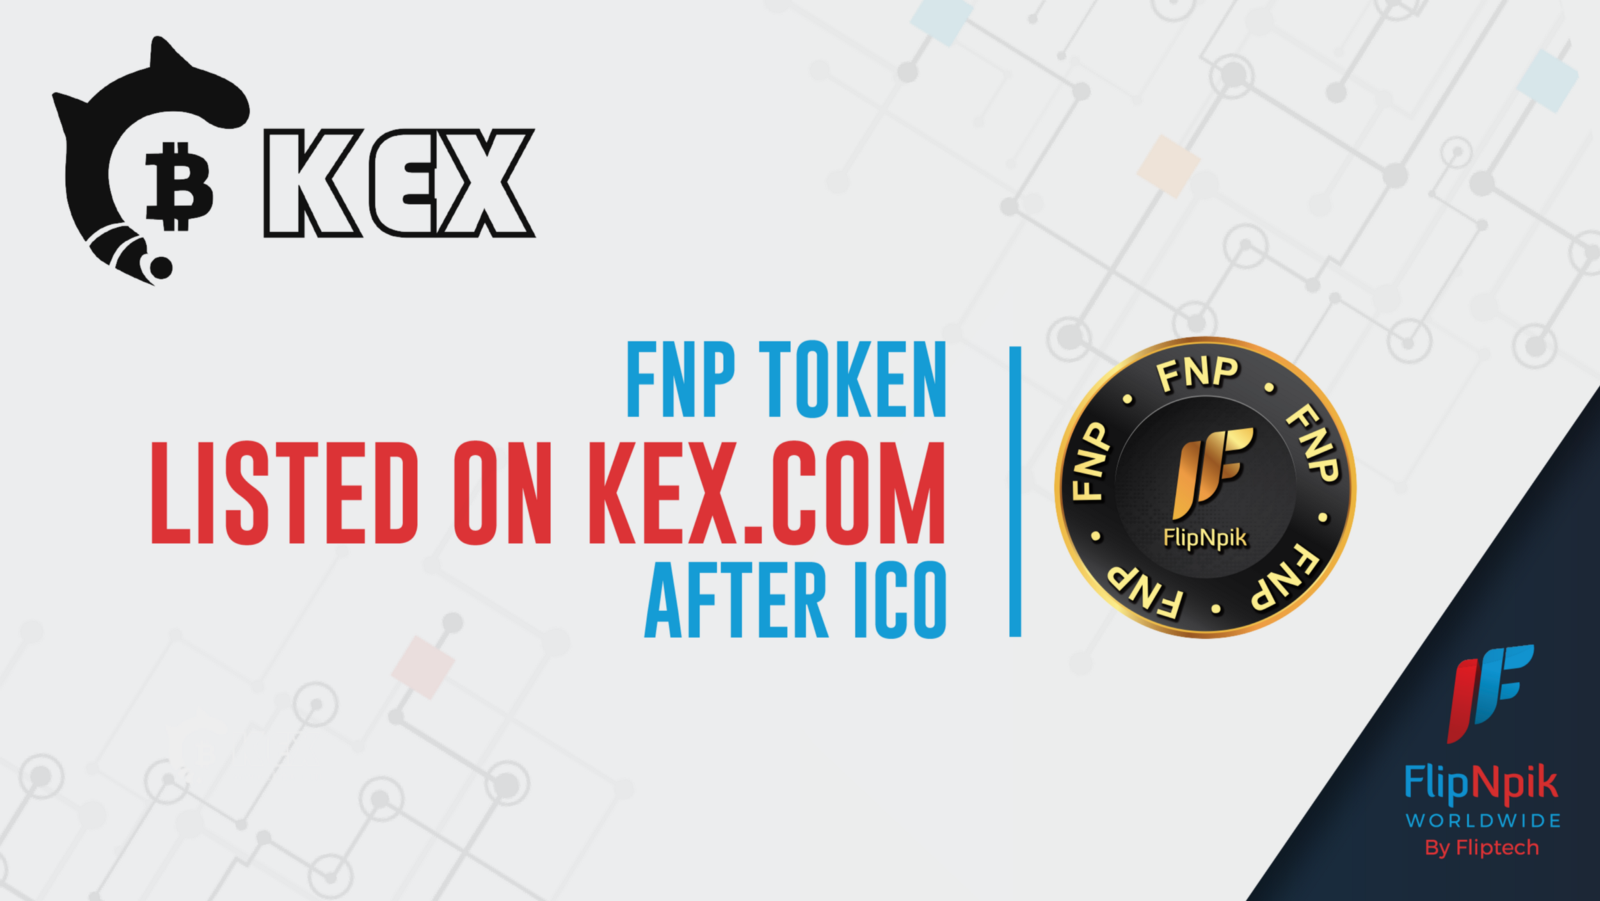 Flipnpik Signed An Agreement With Kex Exchange Flipnpik Worldwide